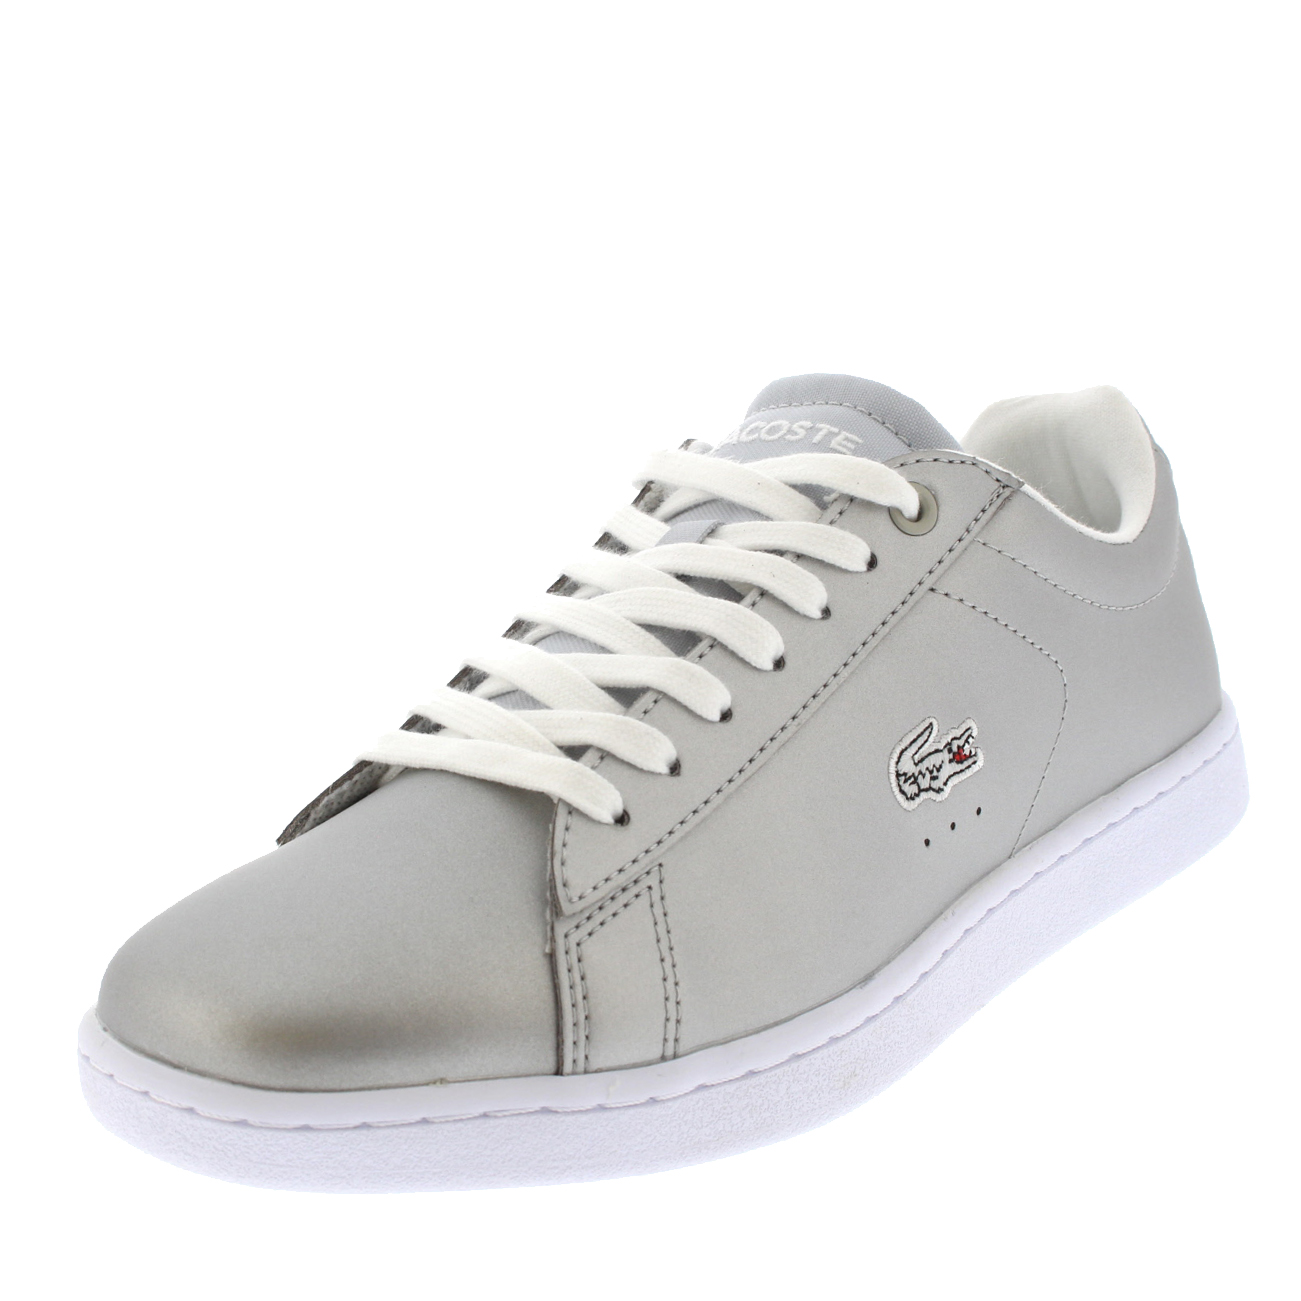 3d4c618e3 Lacoste Women s Carnaby EVO 117 Leather Lace up Trainer Silver UK 8 ...